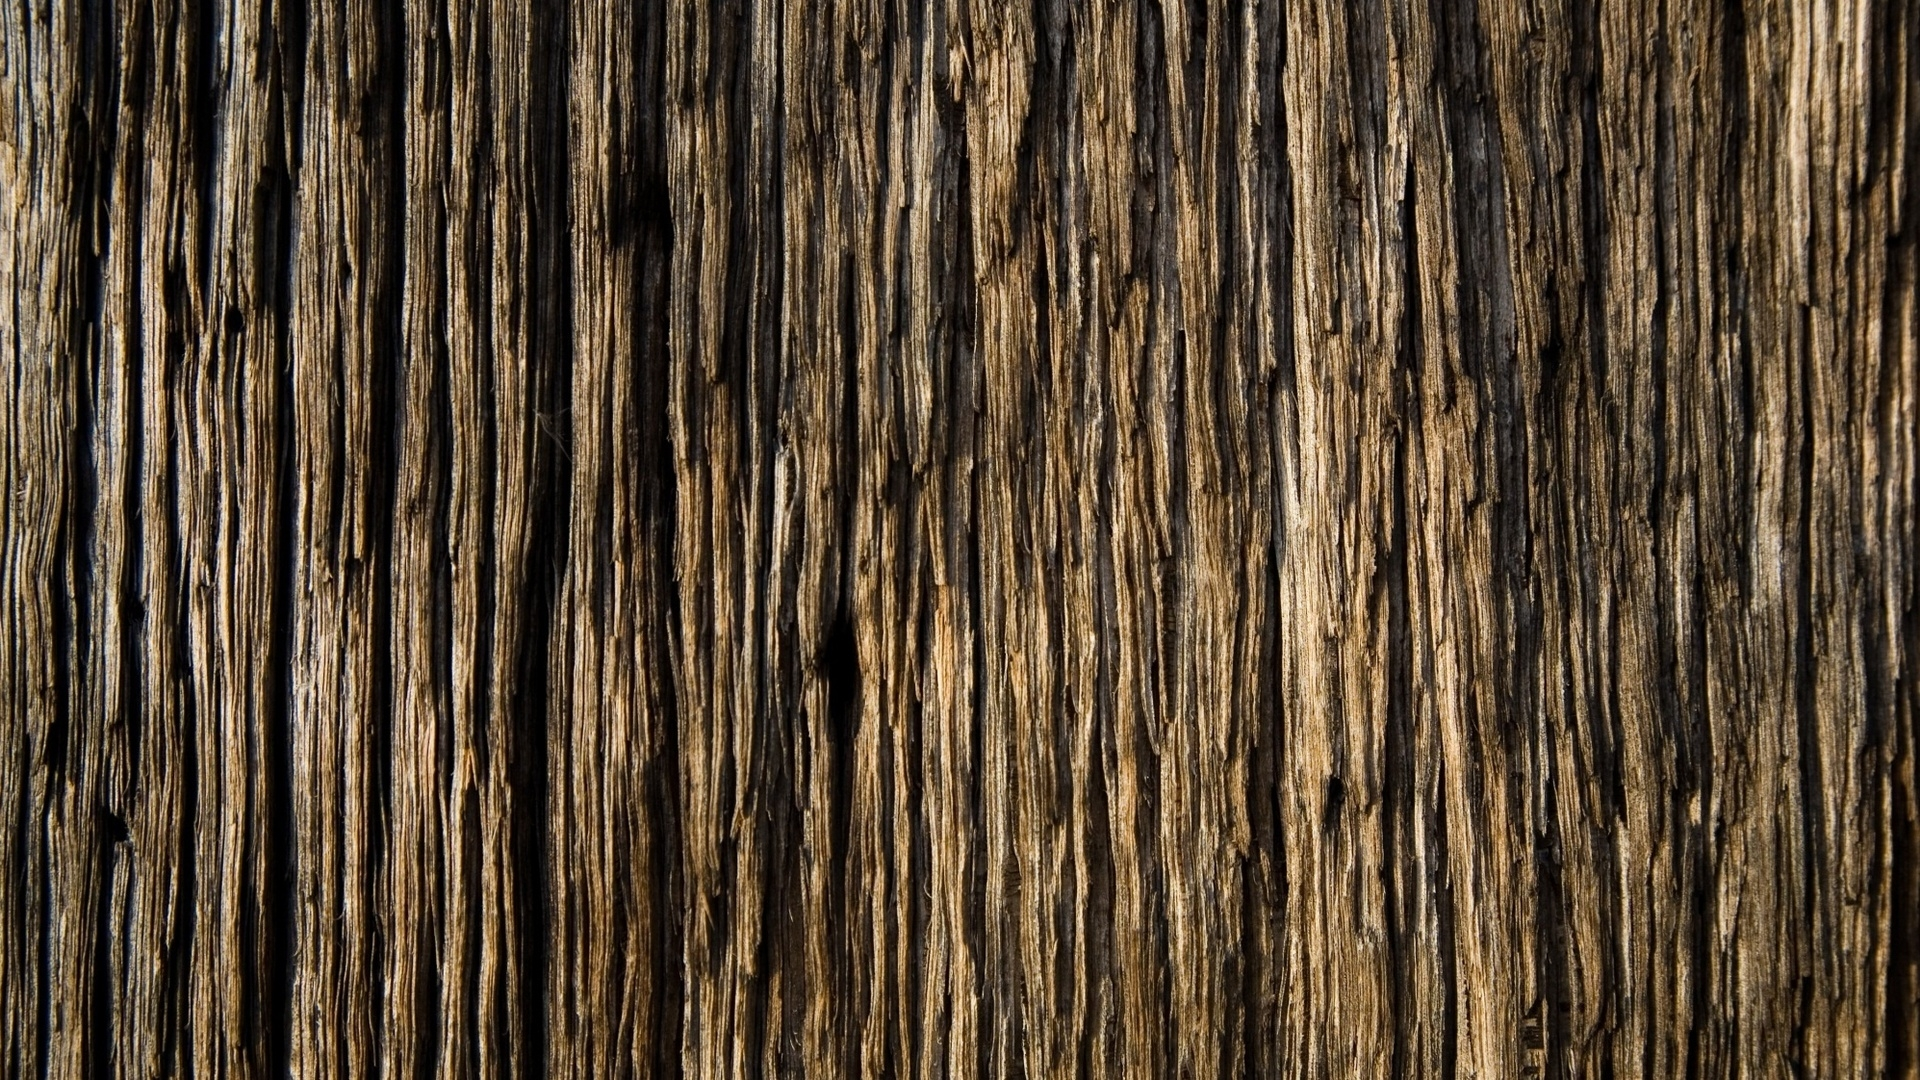 bark-wood-background-http-www-u-org-bark-wood-background-wallpaper-wpc9002589